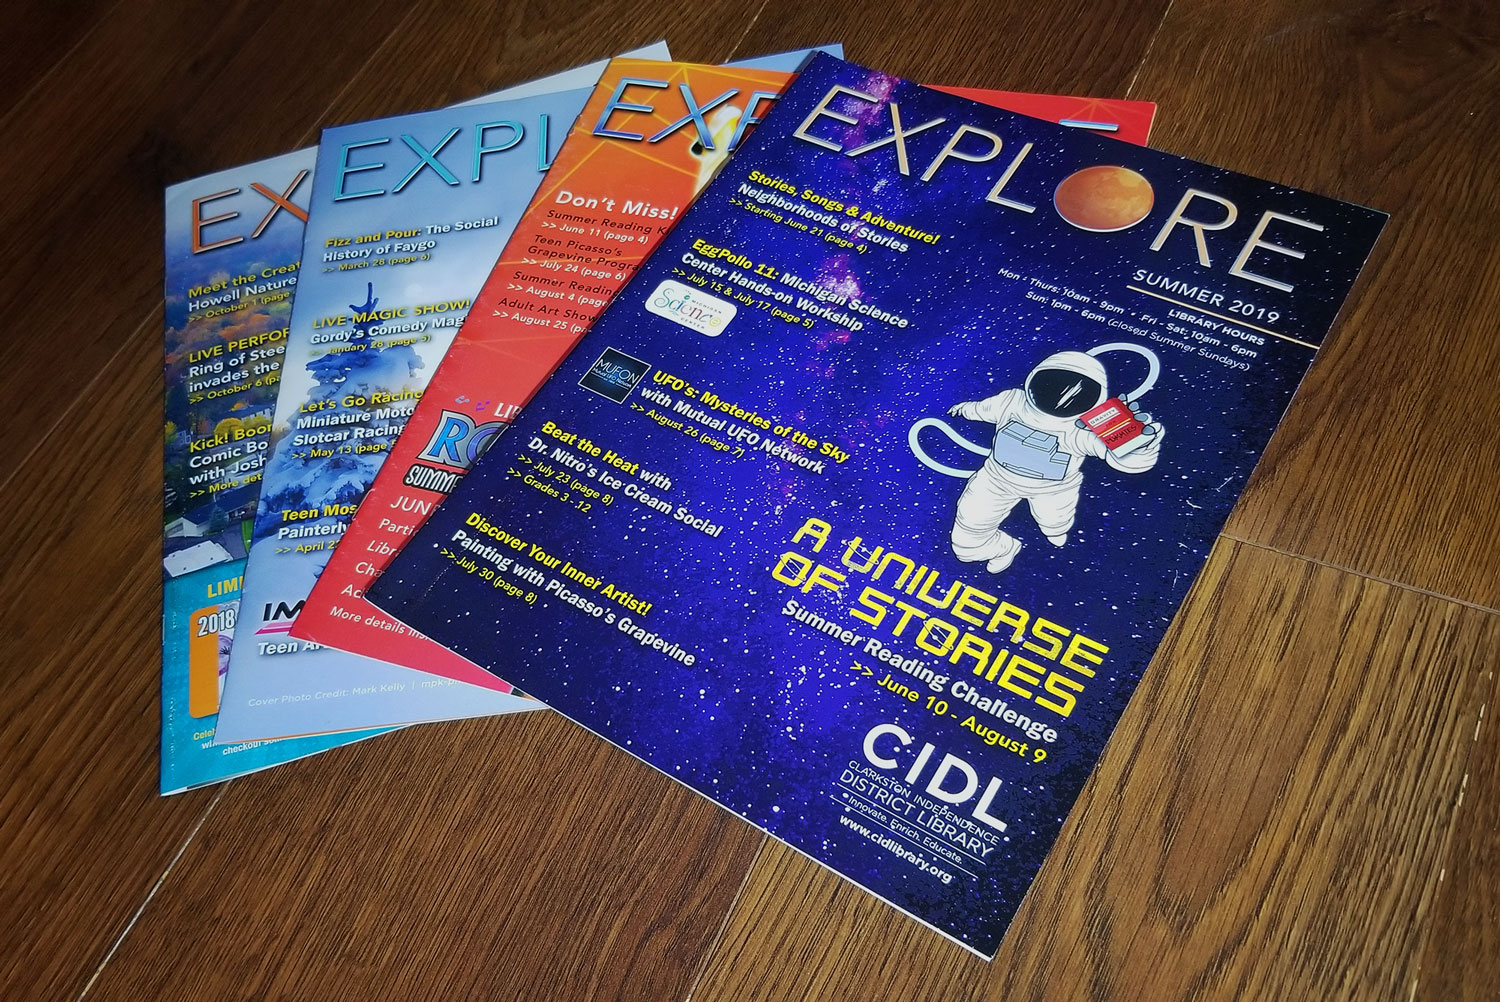 CIDL EXPLORE Newsletter Covers and Editions